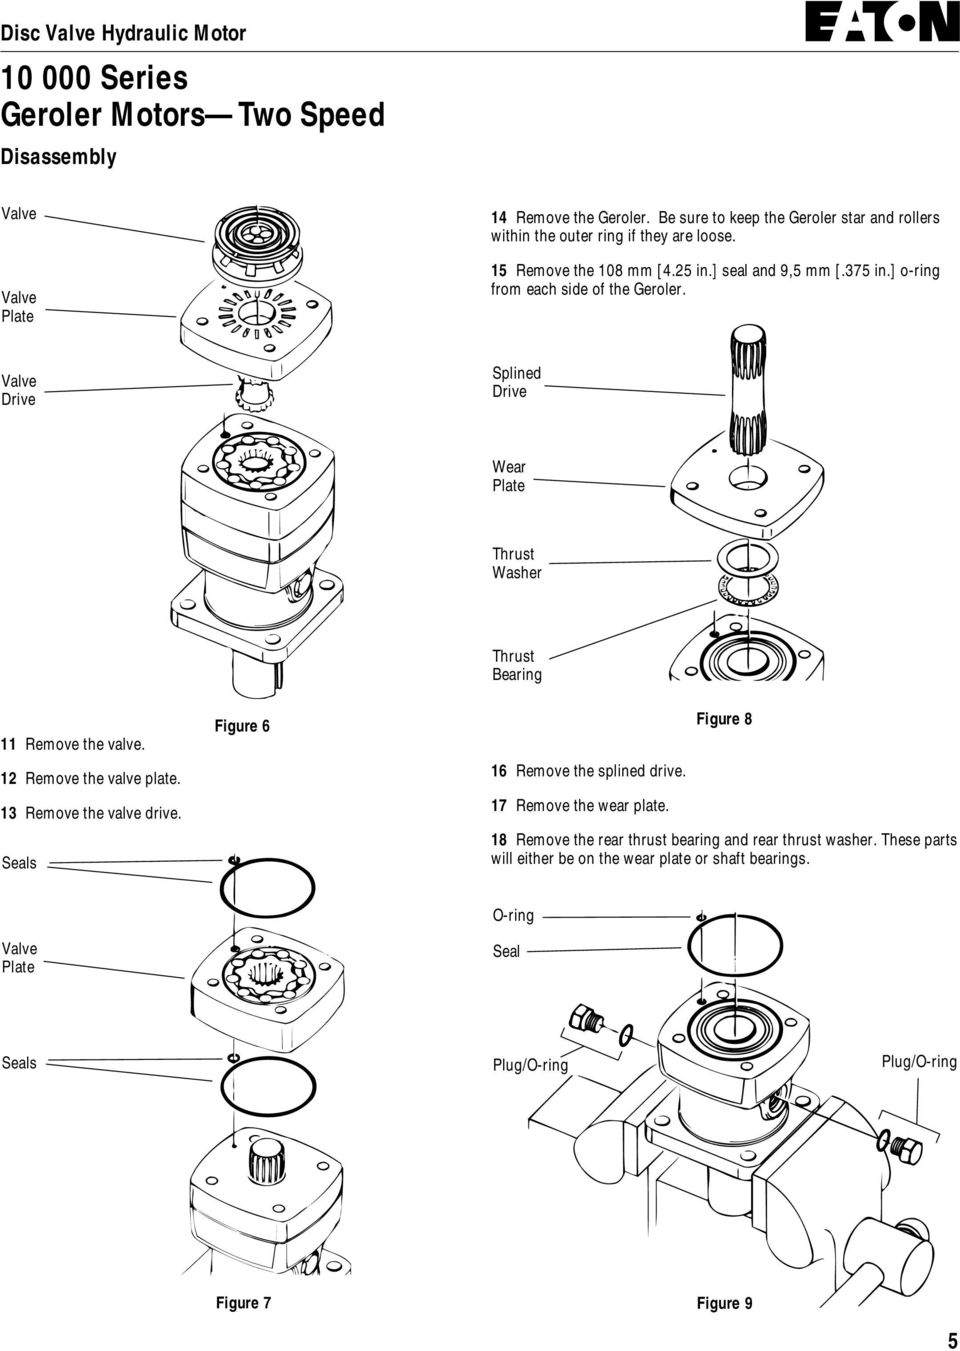 Drive Splined Drive Wear Plate Thrust Washer 11 Remove the valve. 12 Remove the valve plate. 13 Remove the valve drive.